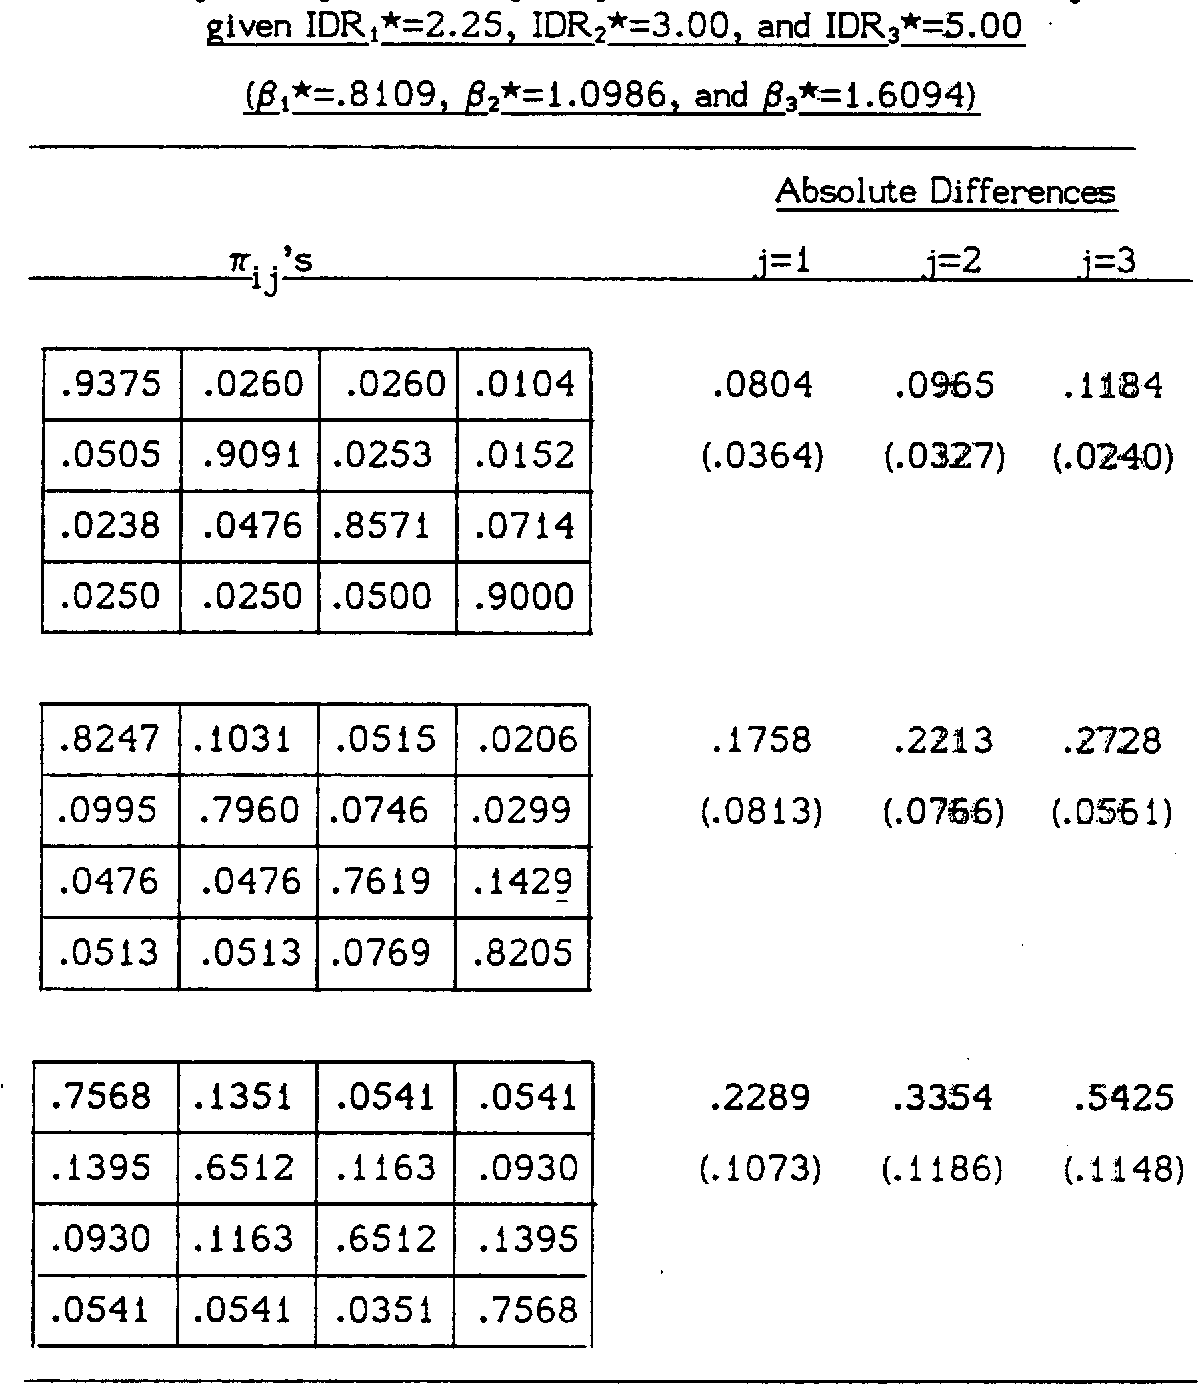 table 5.8